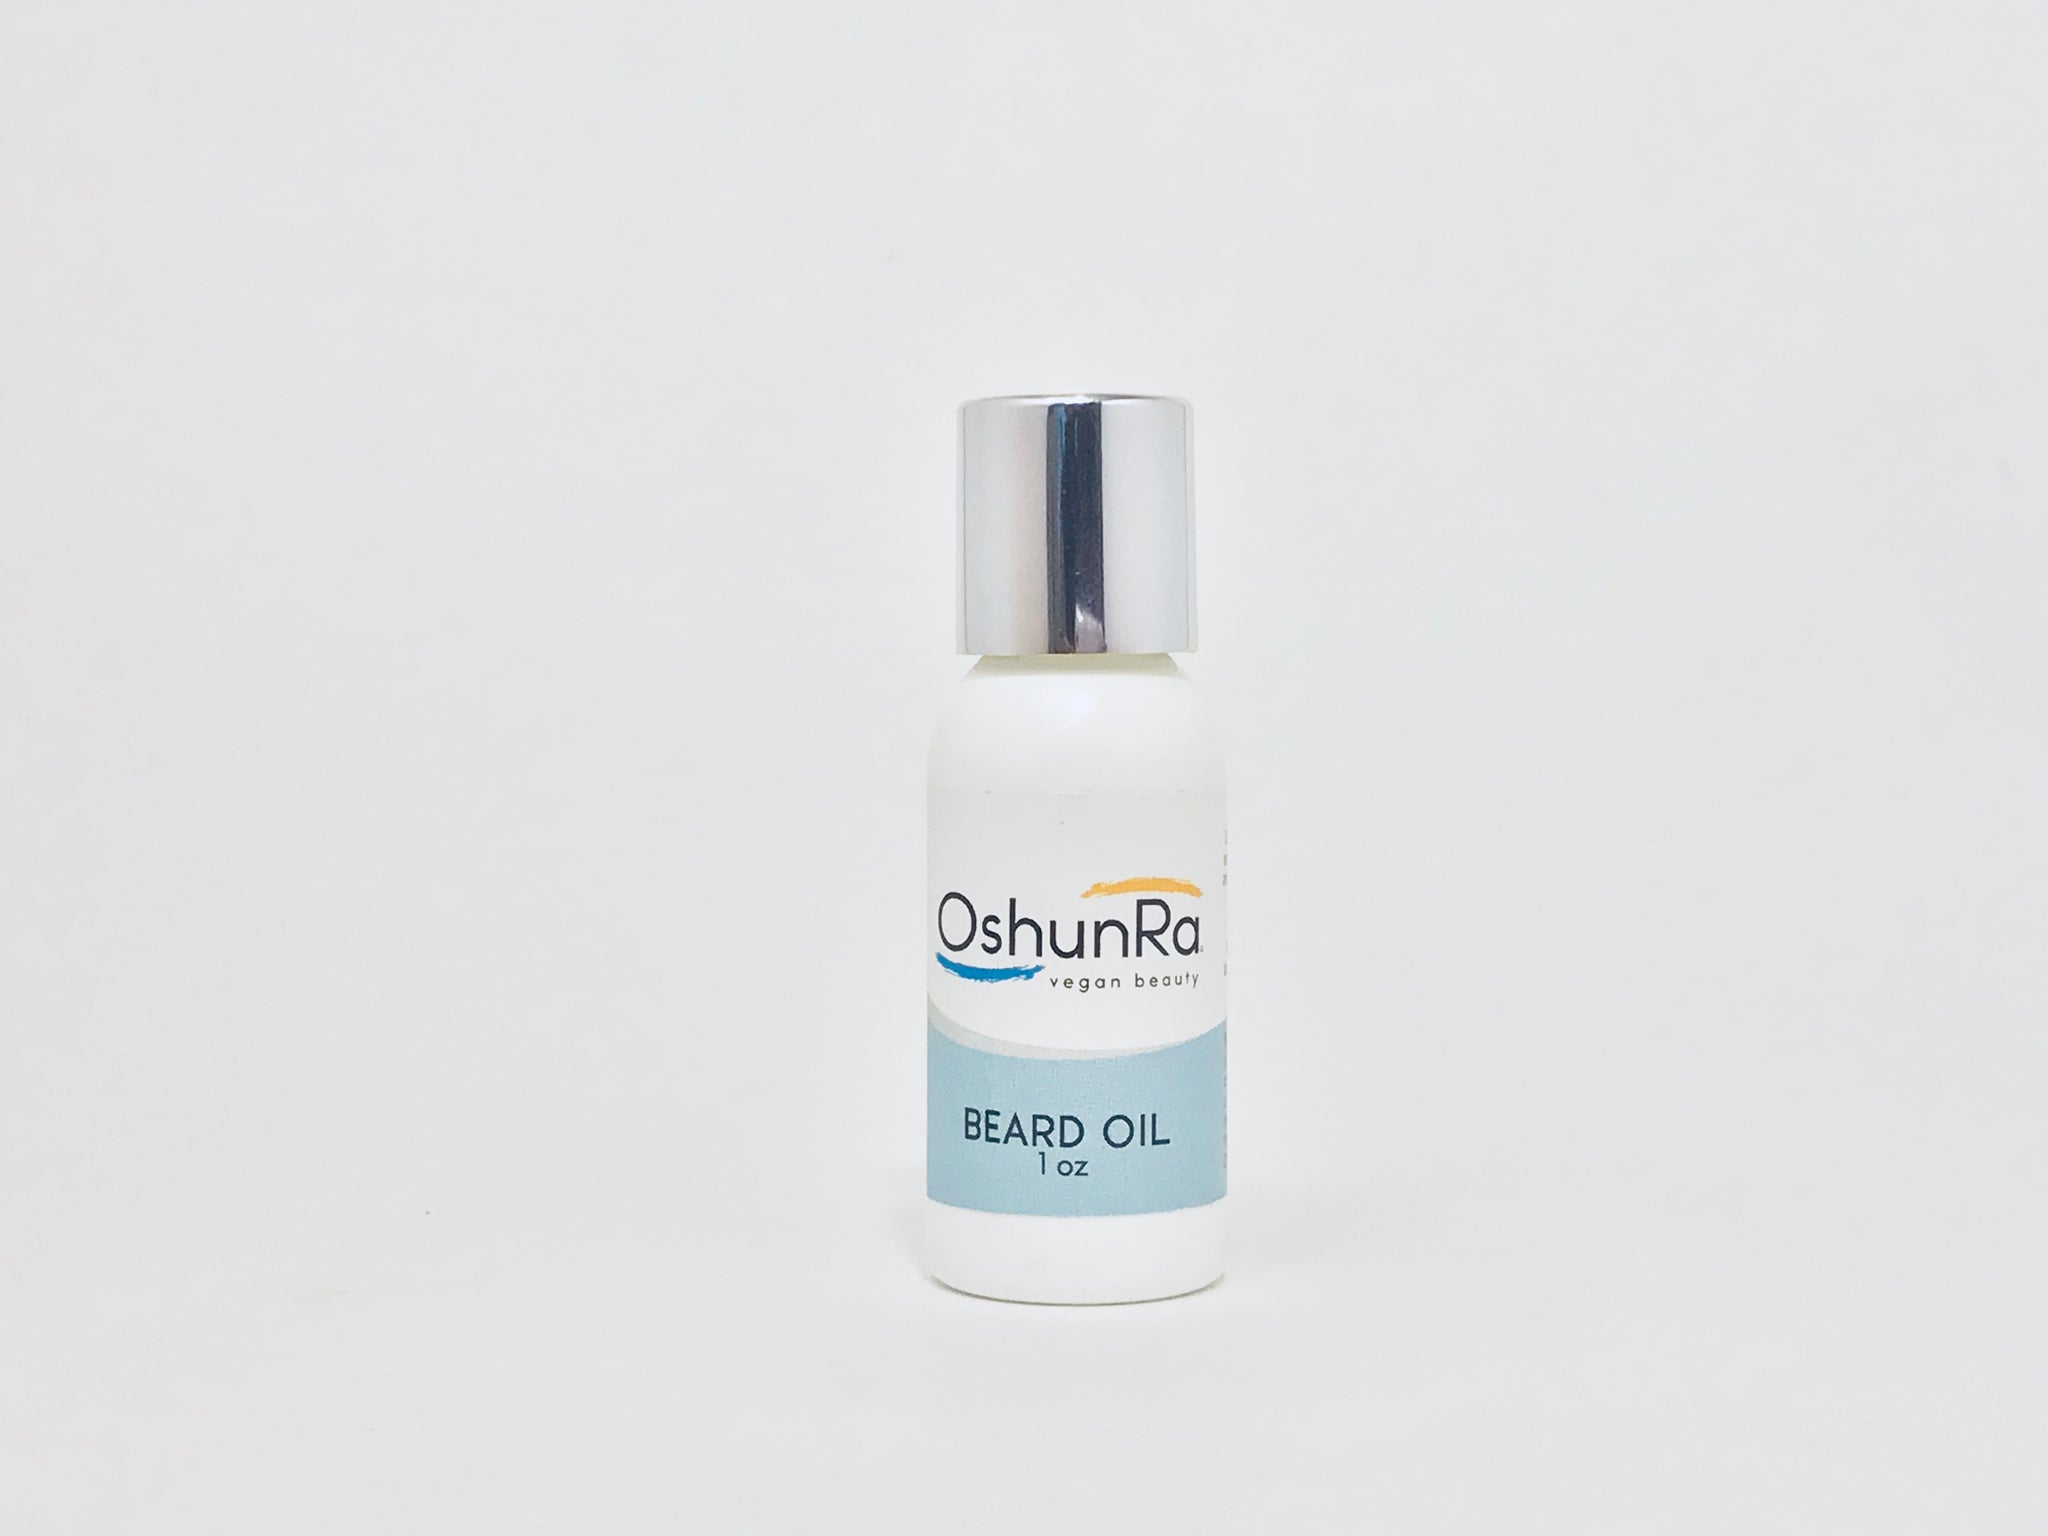 Beard Oil by OshunRa Vegan Beauty